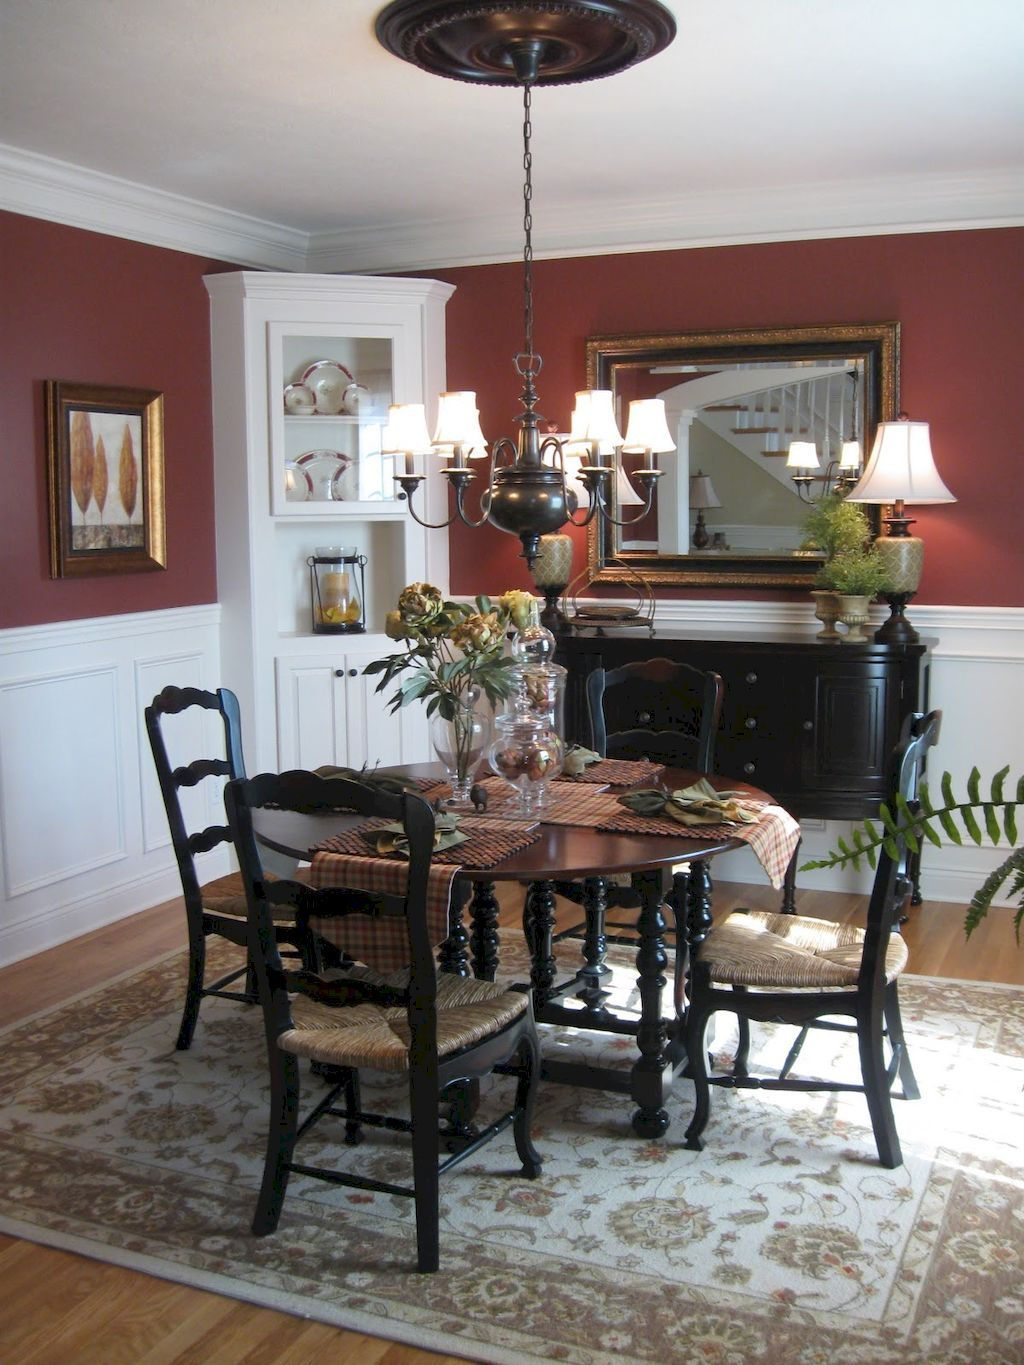 Gorgeous 65 Vintage French Country Dining Room Design Ideas Idecorgram